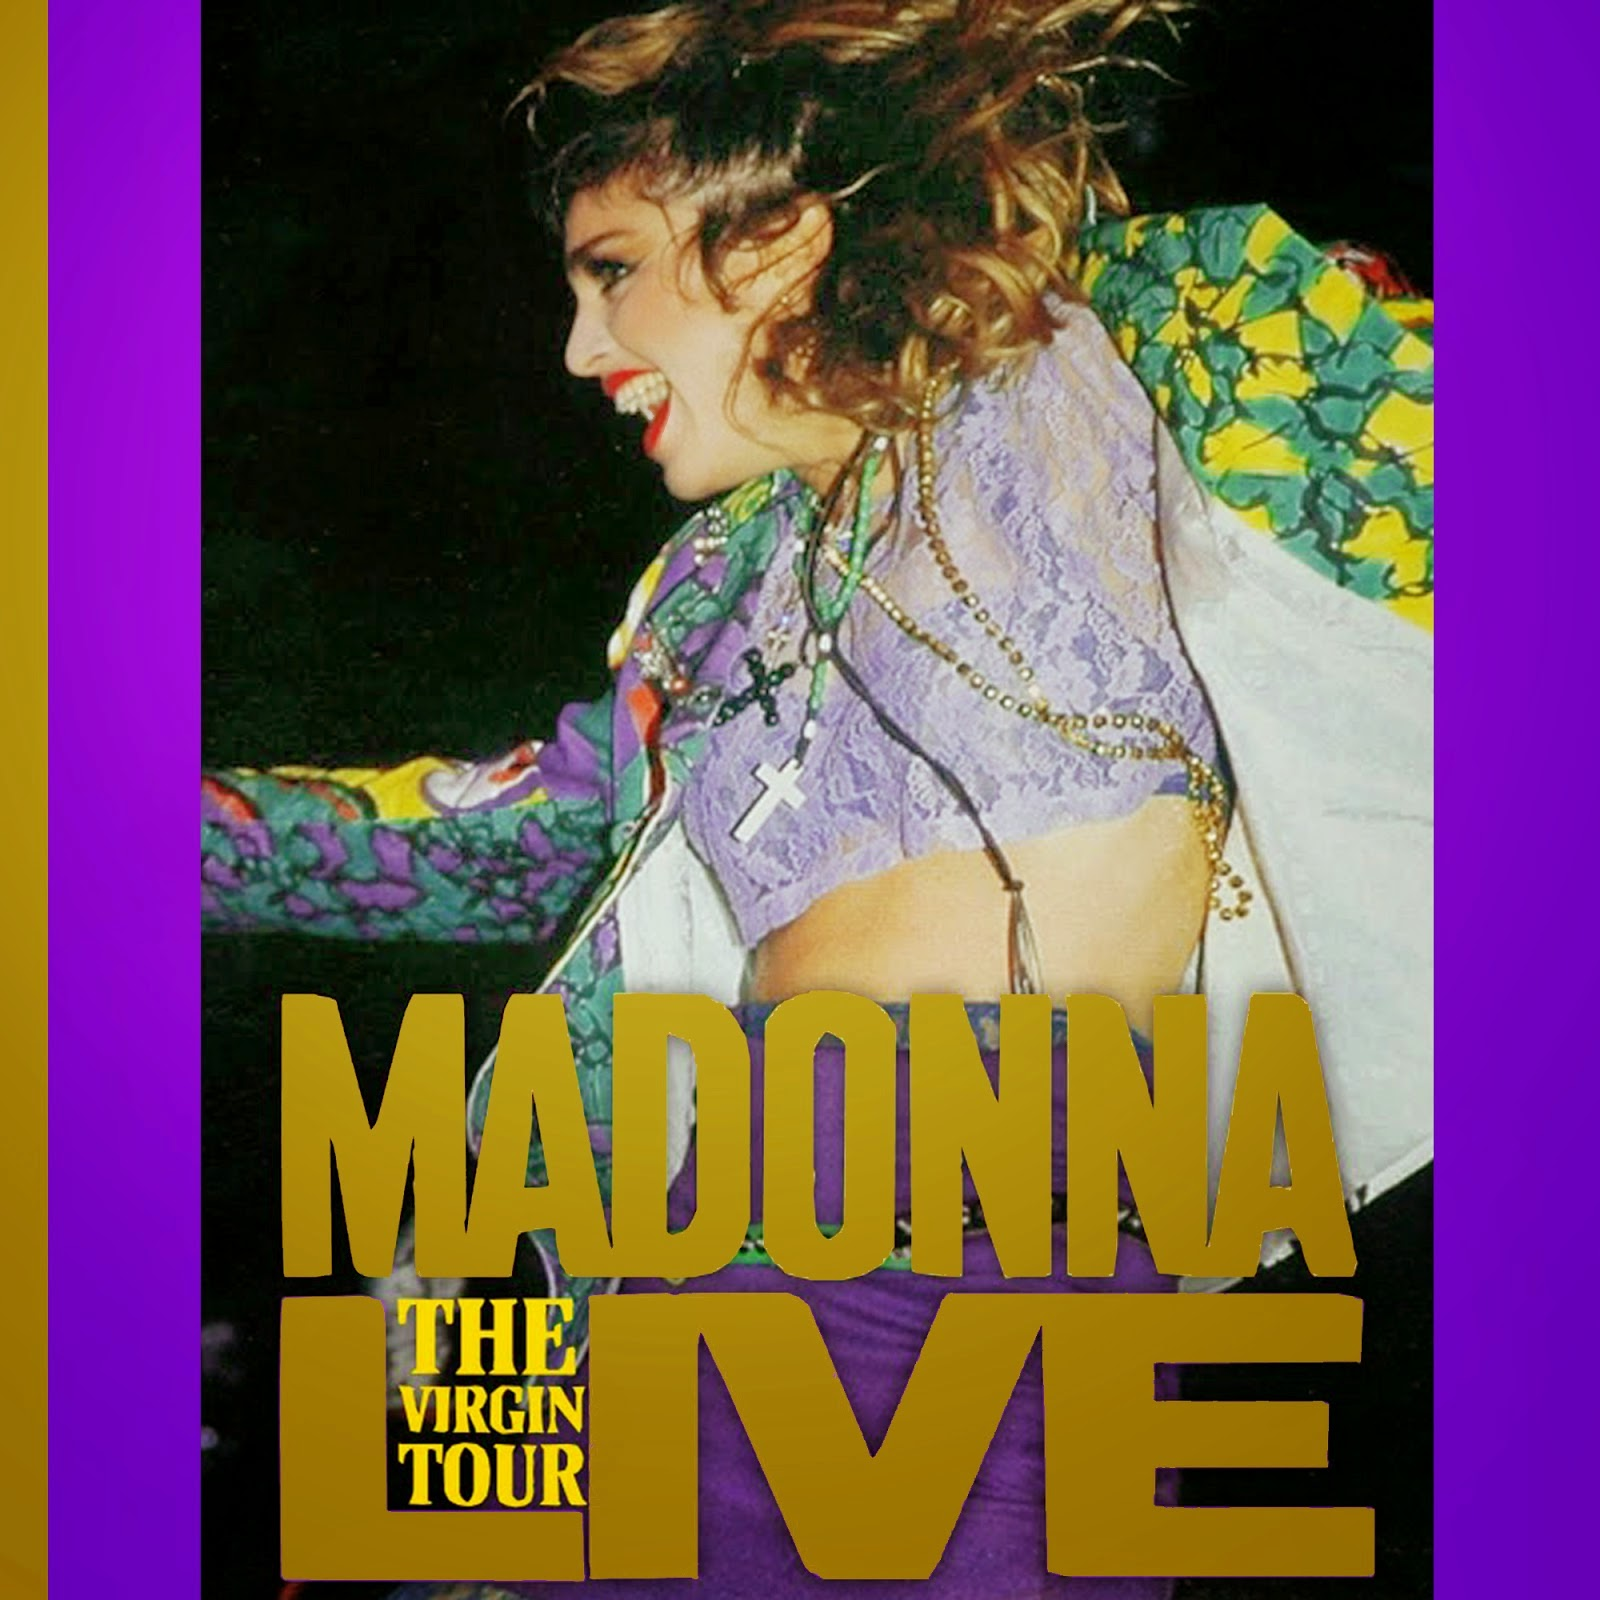 The Virgin Tour Dvd 39